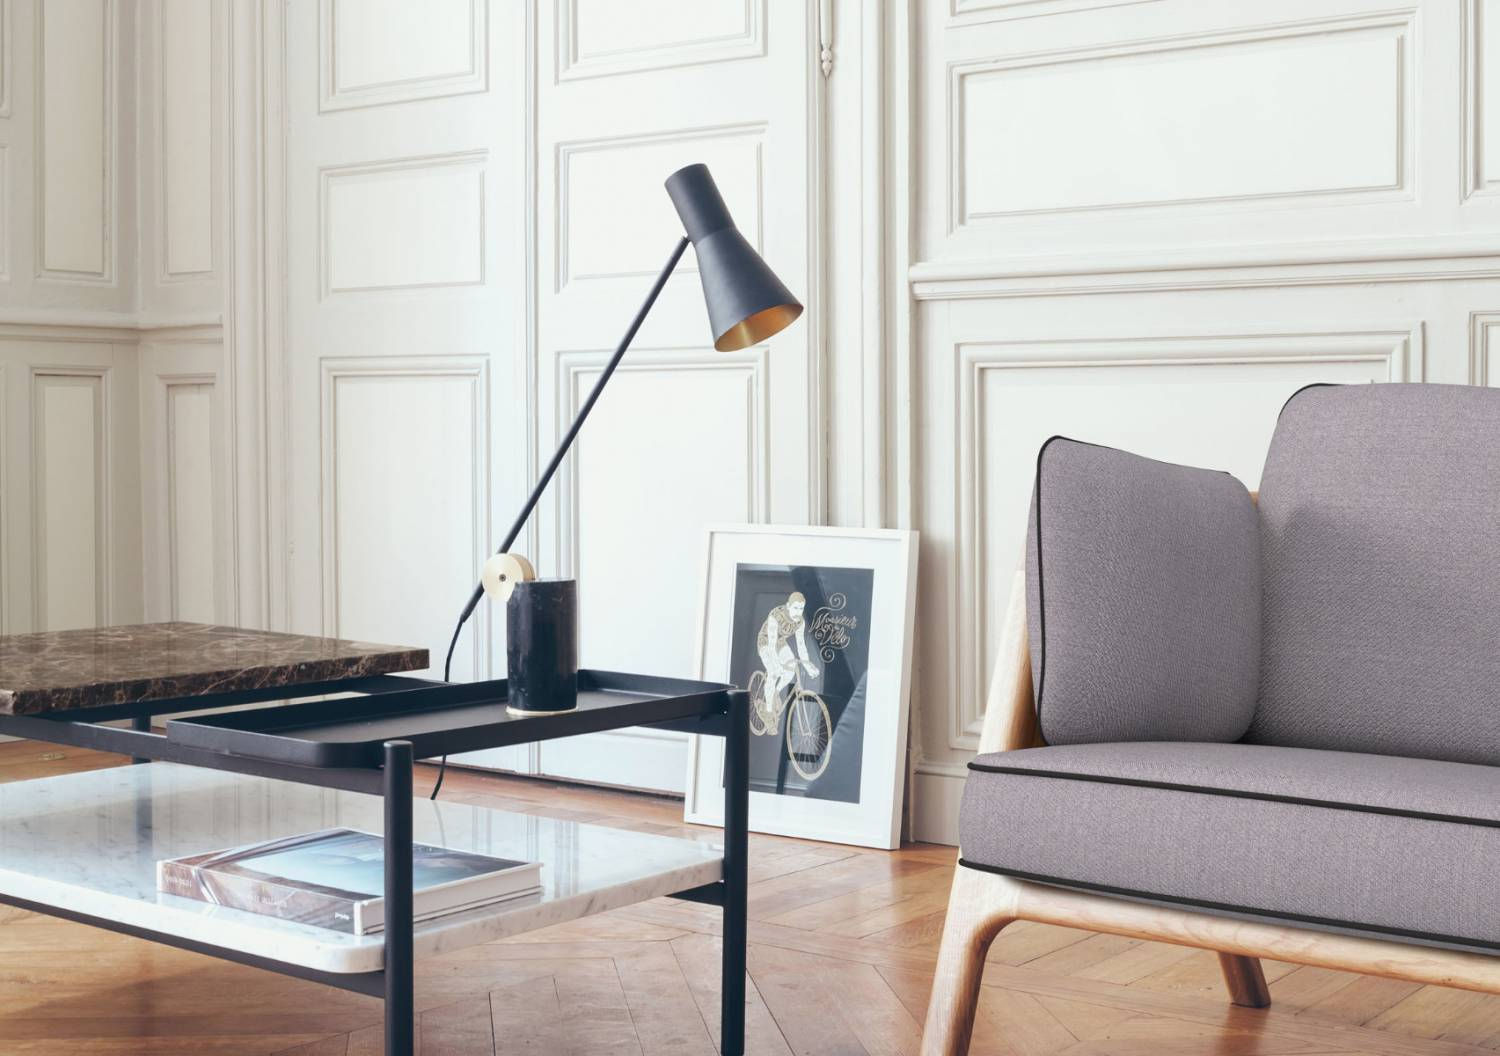 Lutz table lamp by Pierre Dubourg for Versant Edition | Flodeau.com